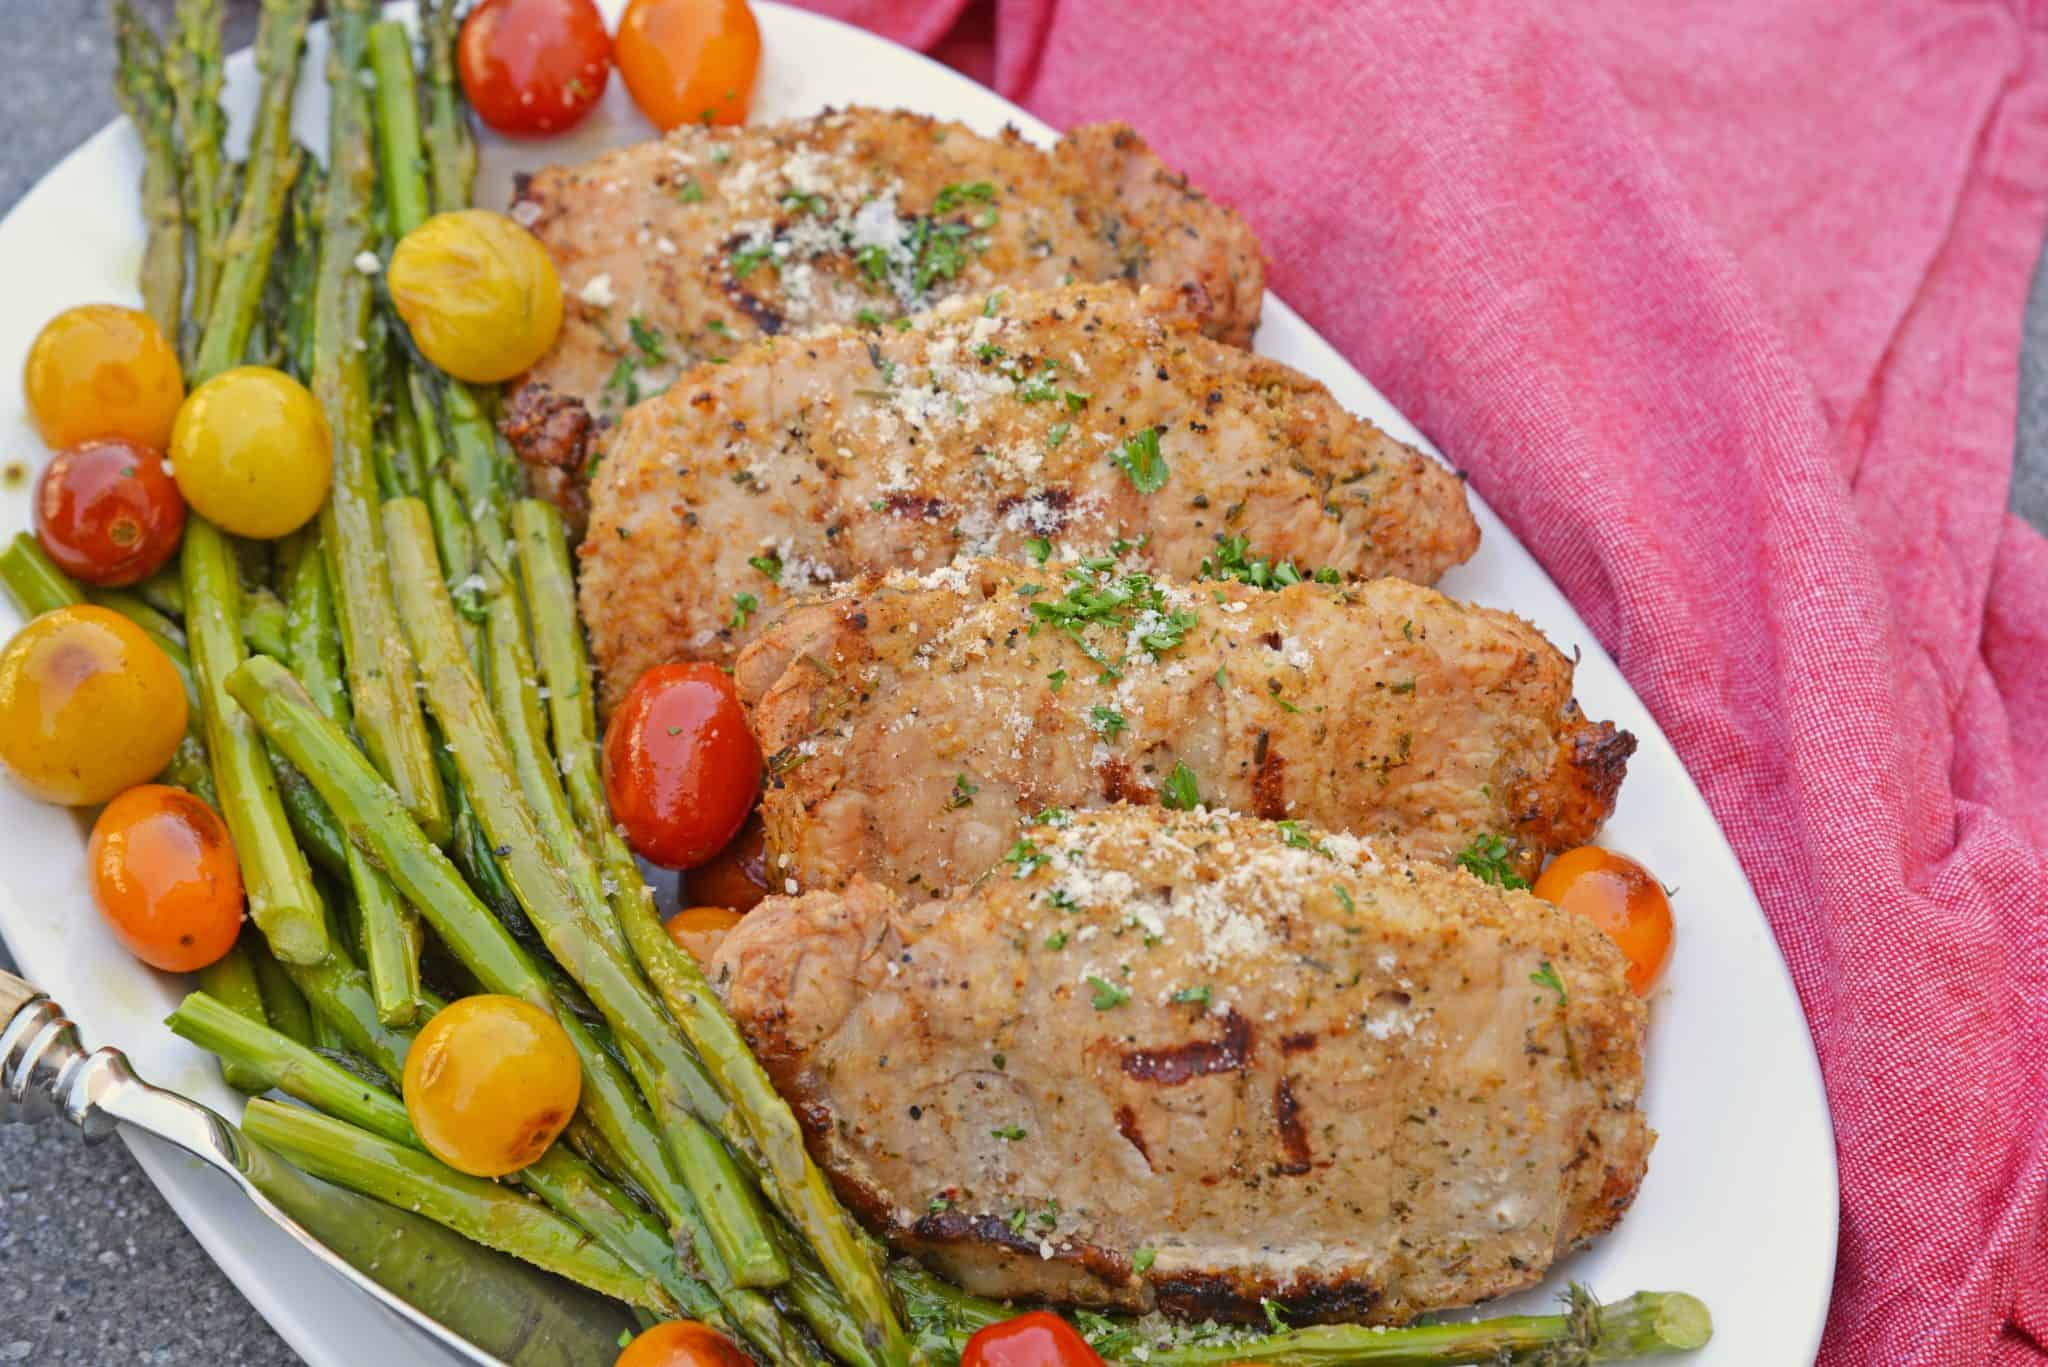 Grilled pork chops with green beans and tomatoes